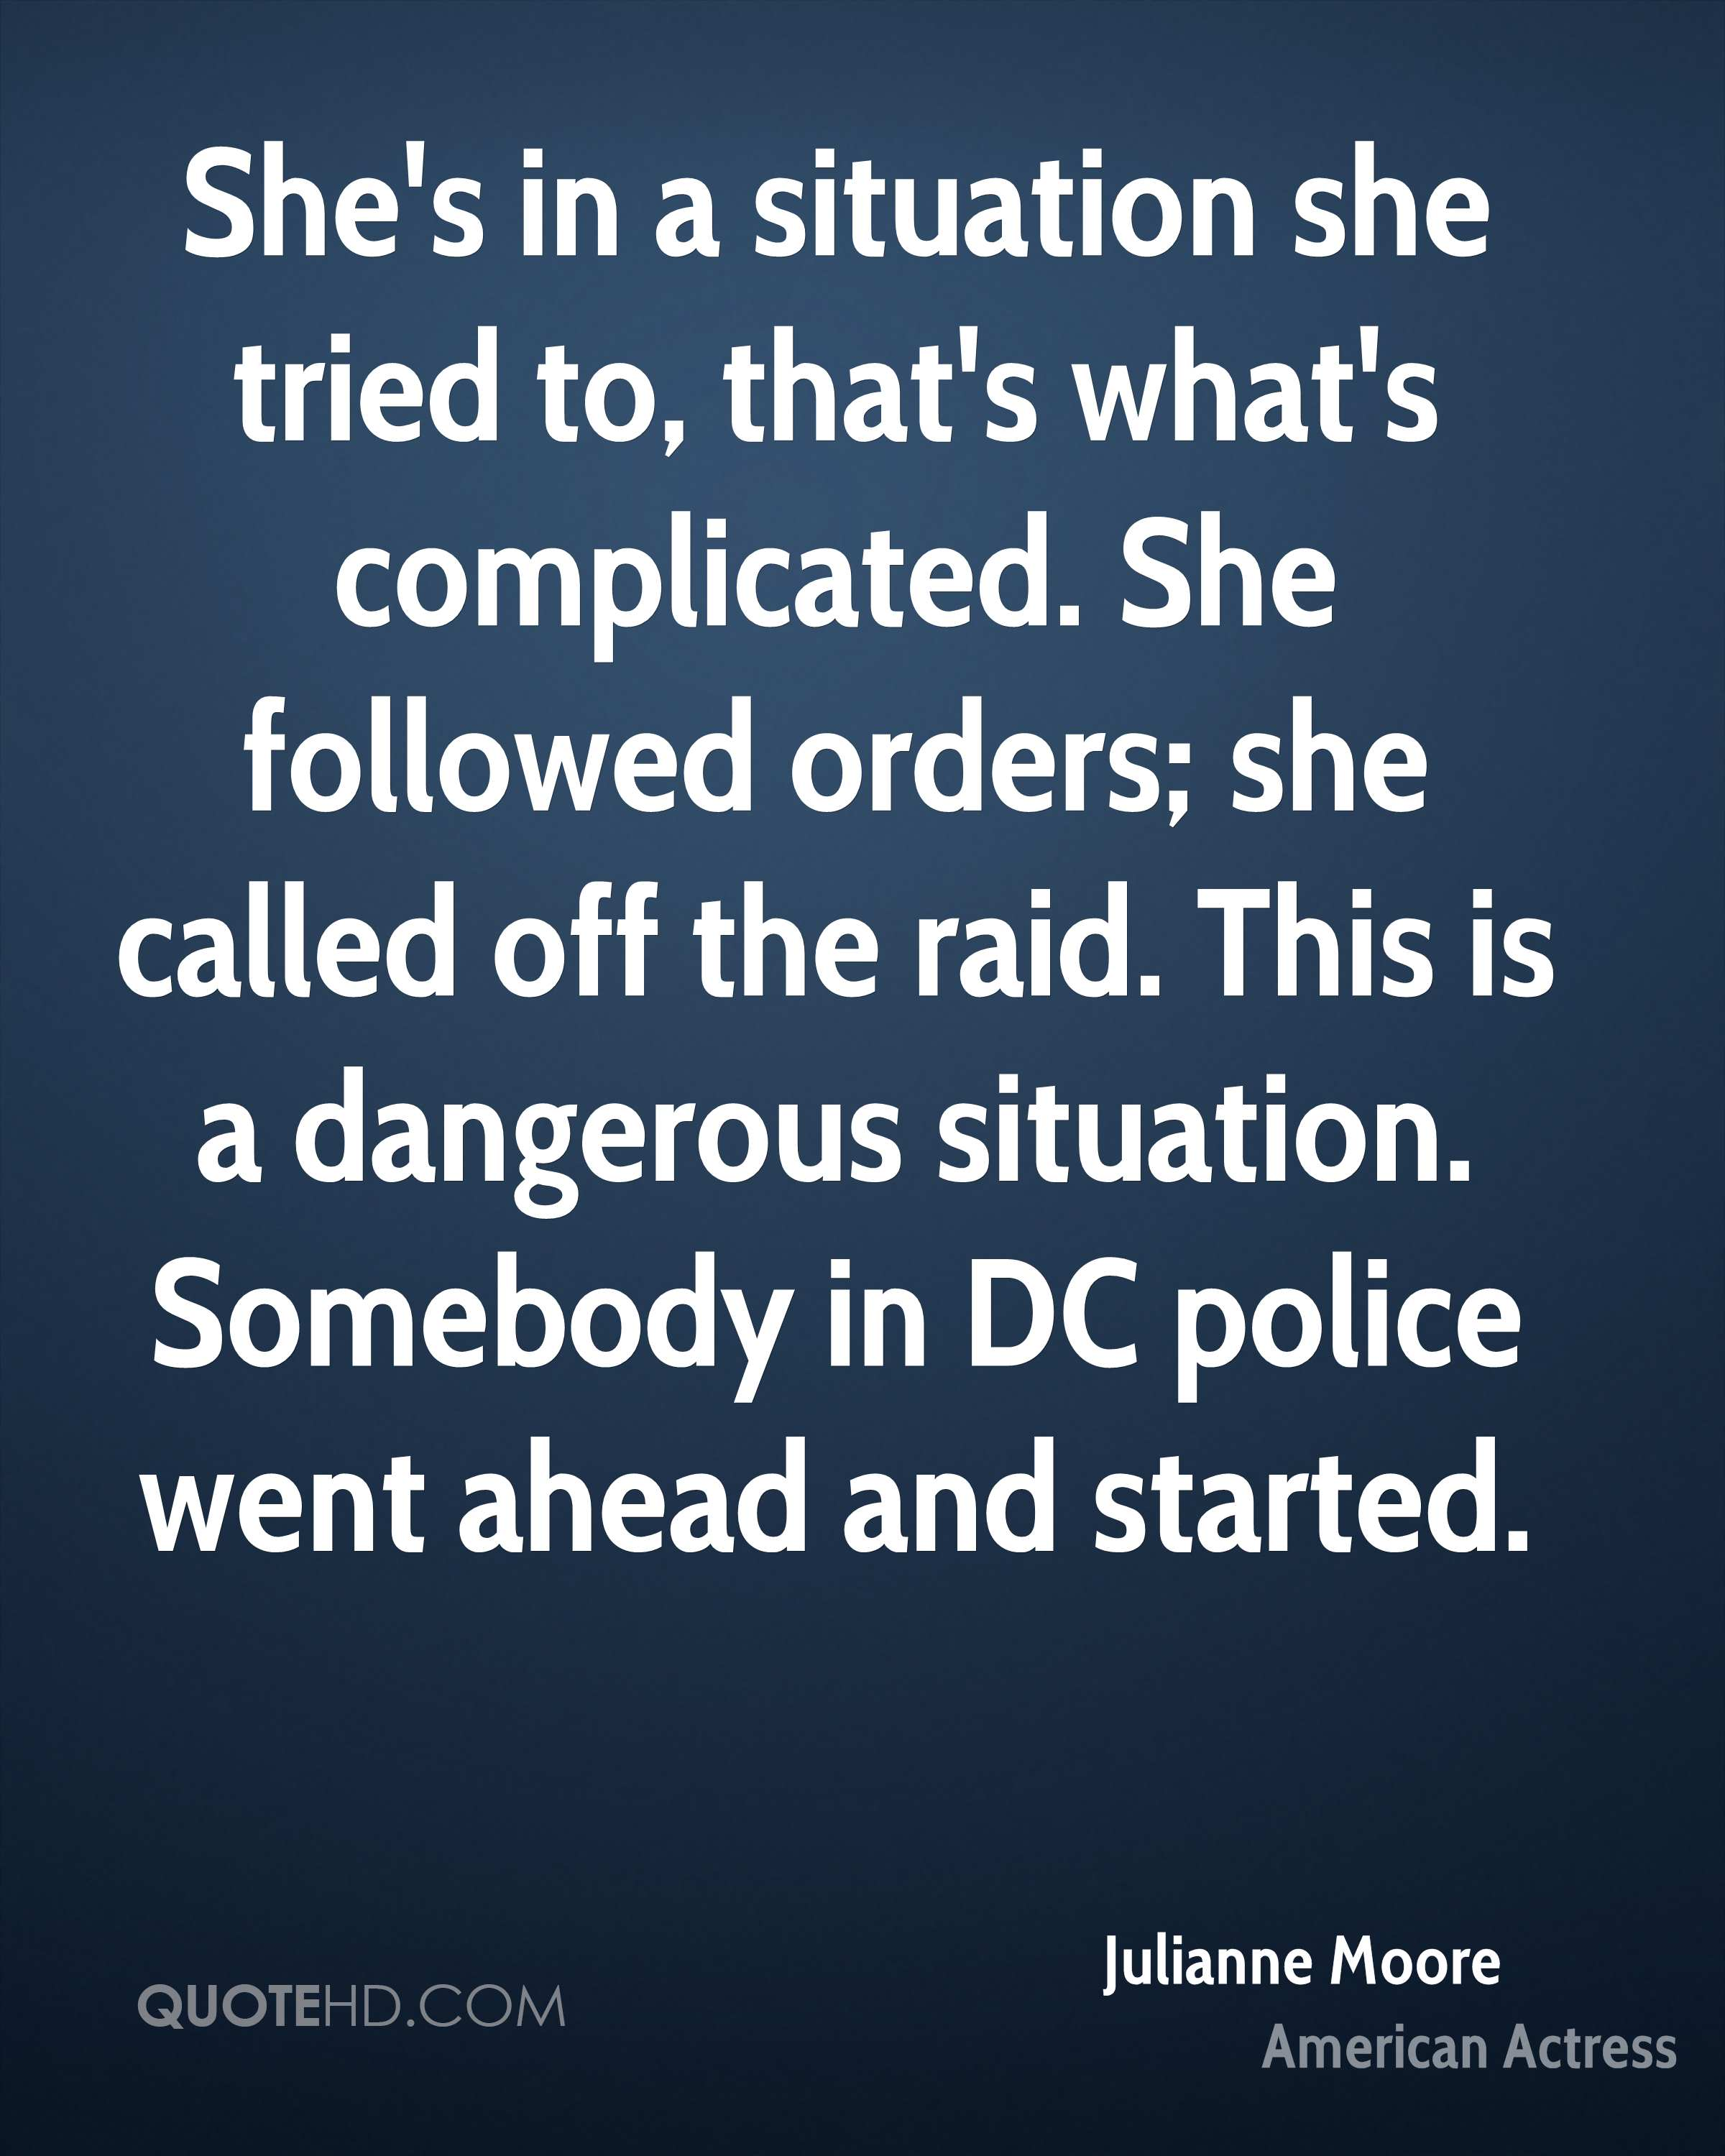 She's in a situation she tried to, that's what's complicated. She followed orders; she called off the raid. This is a dangerous situation. Somebody in DC police went ahead and started.